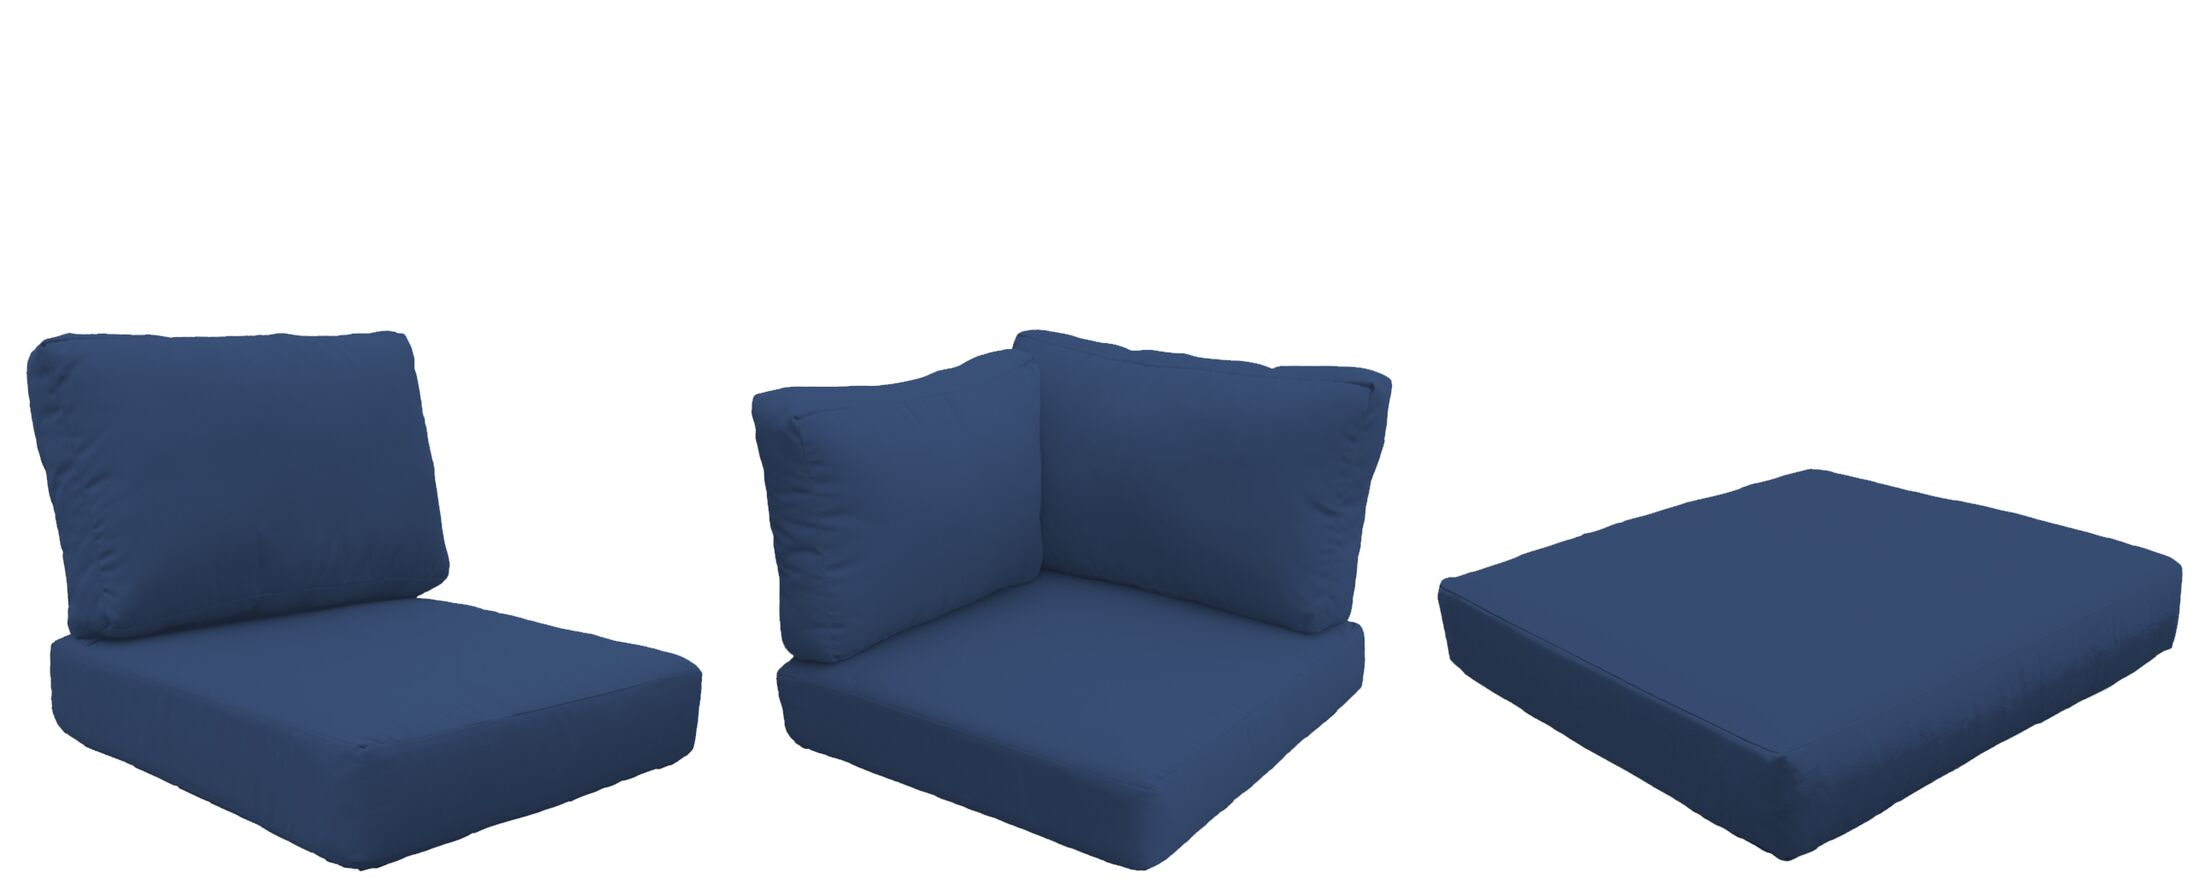 Barbados 25 Piece Outdoor Cushion Set Fabric: Navy